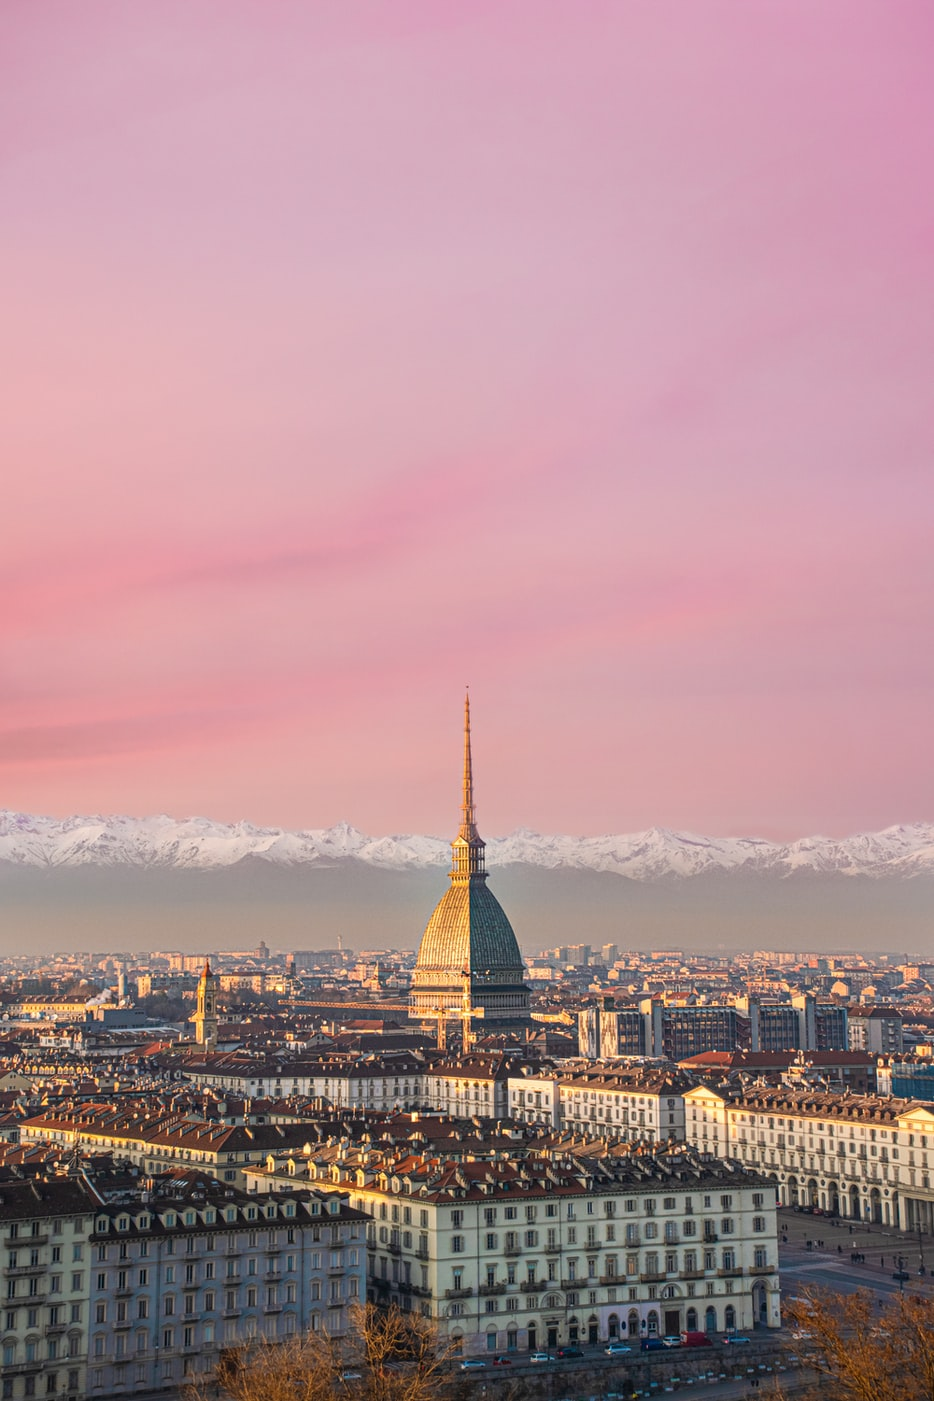 the skyline of Turin, Italy